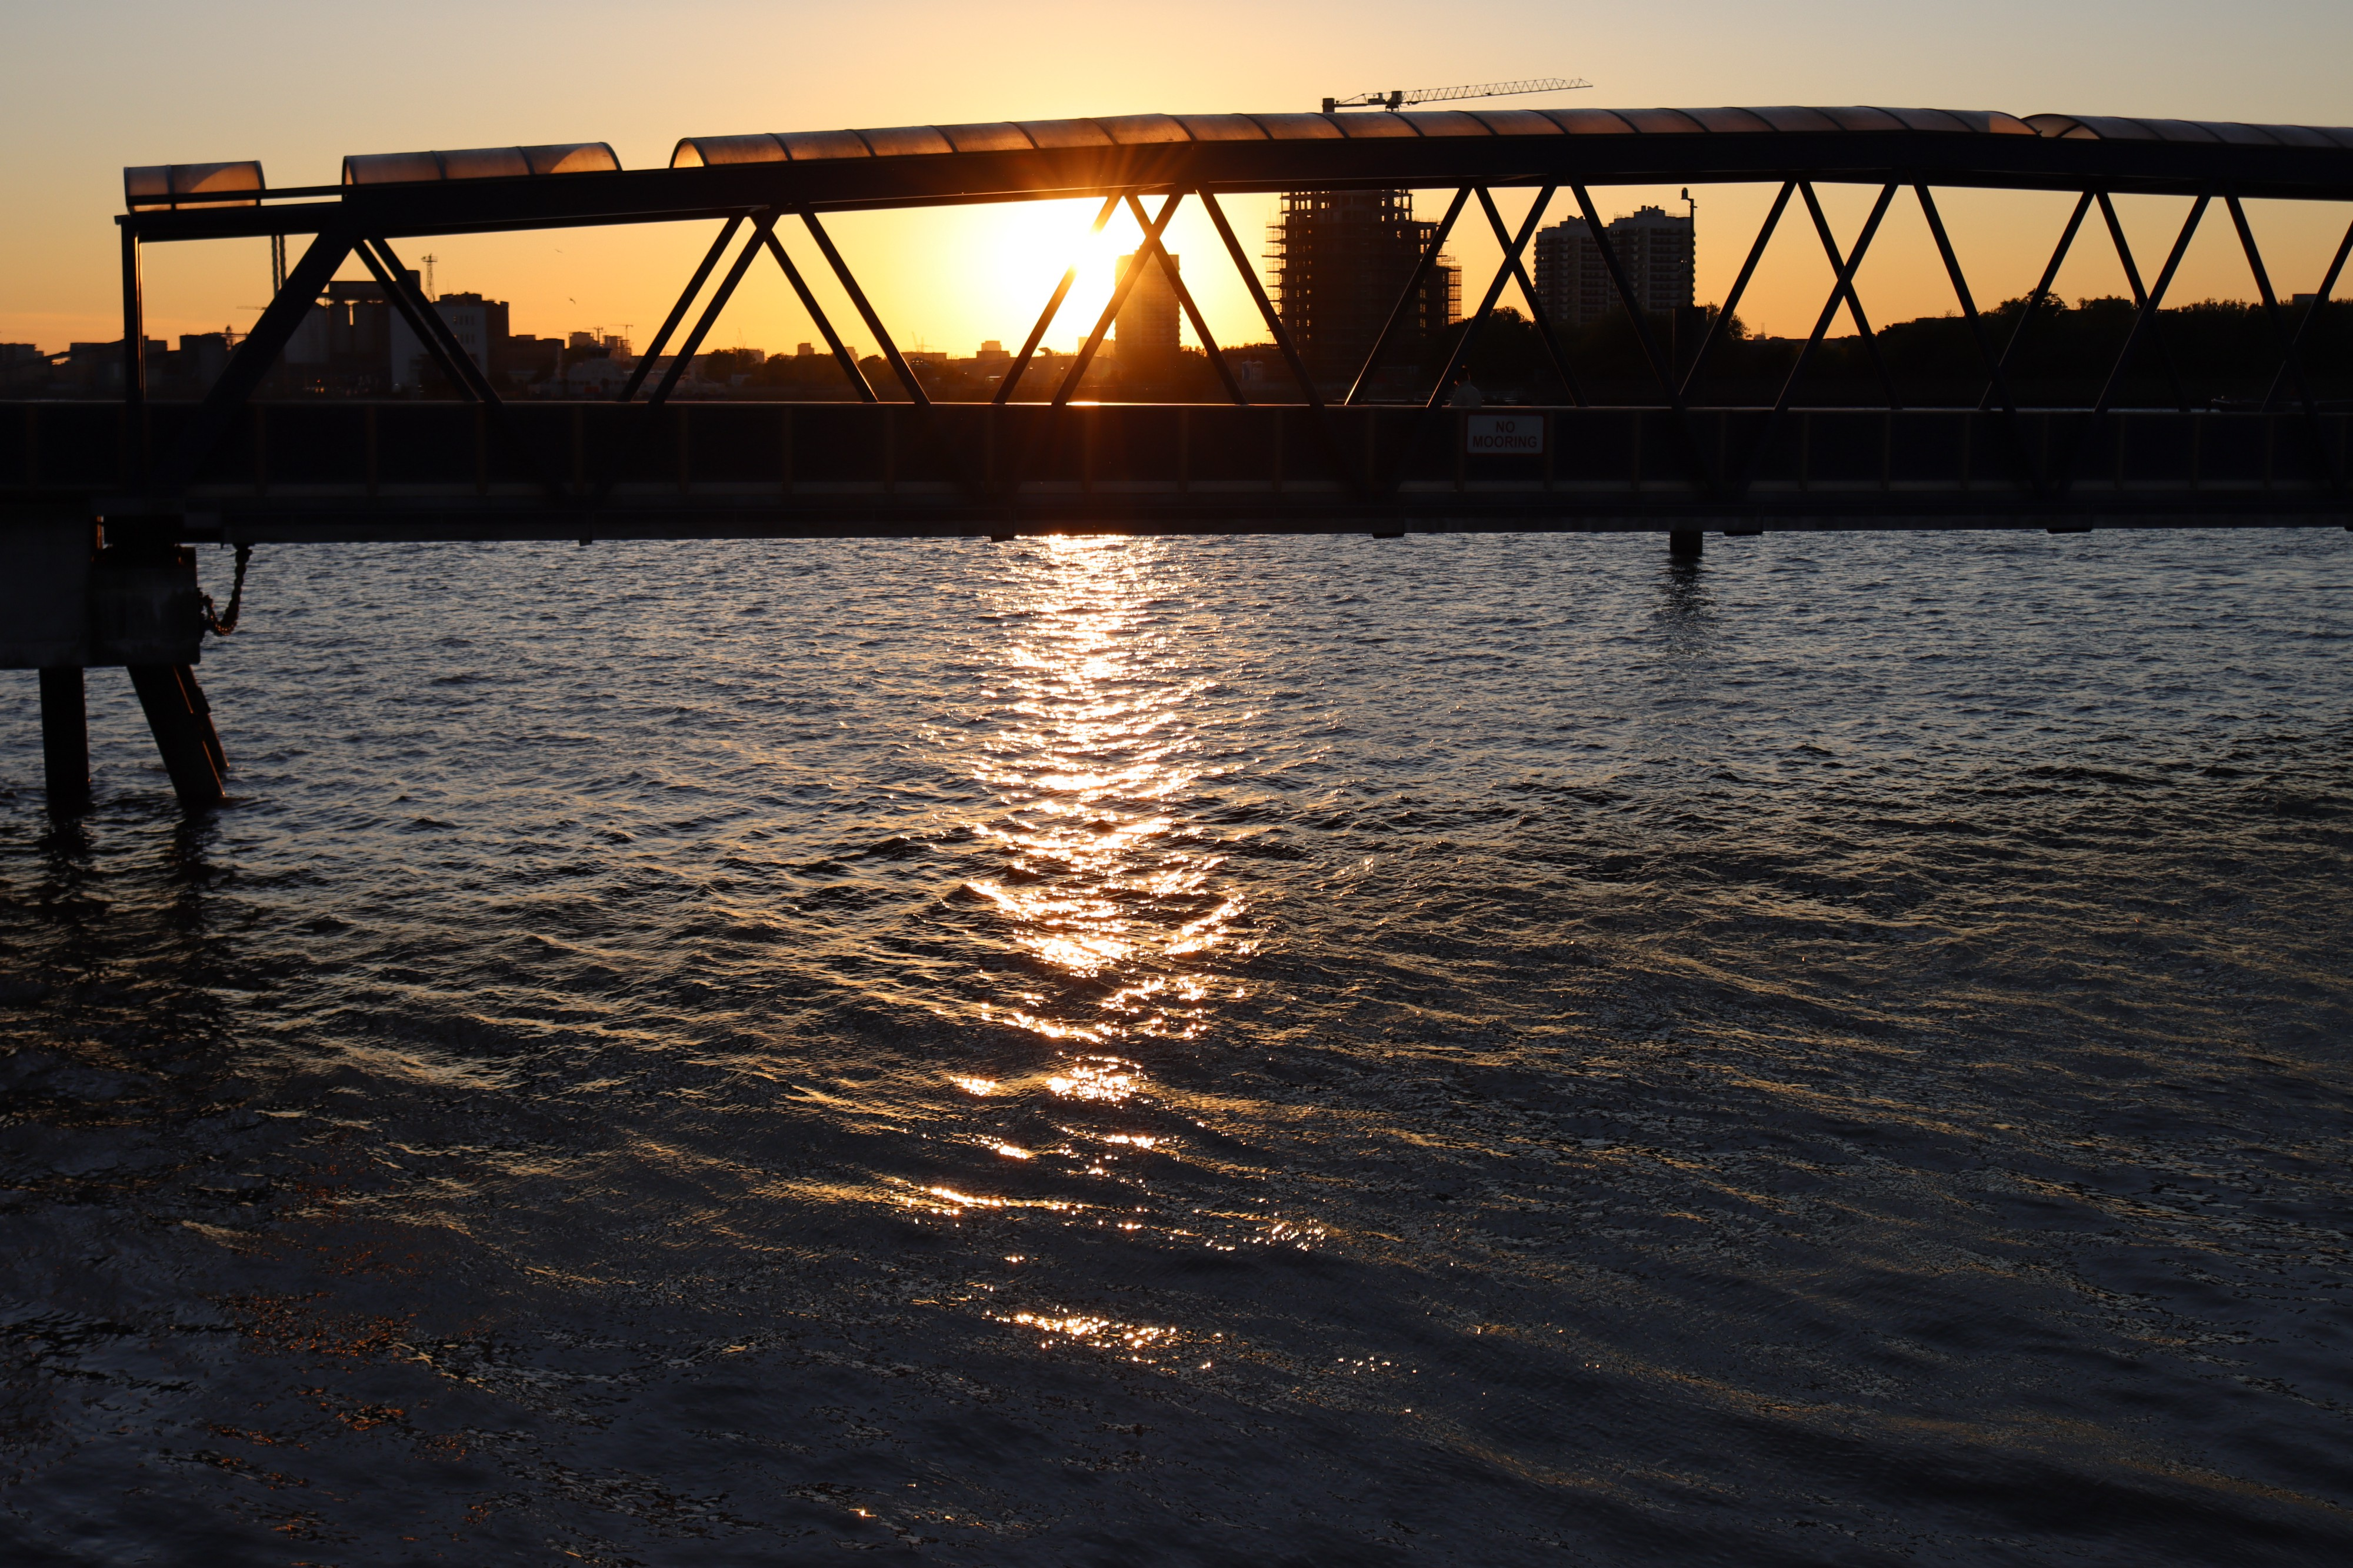 Sunset over the water with a bridge in silohuette